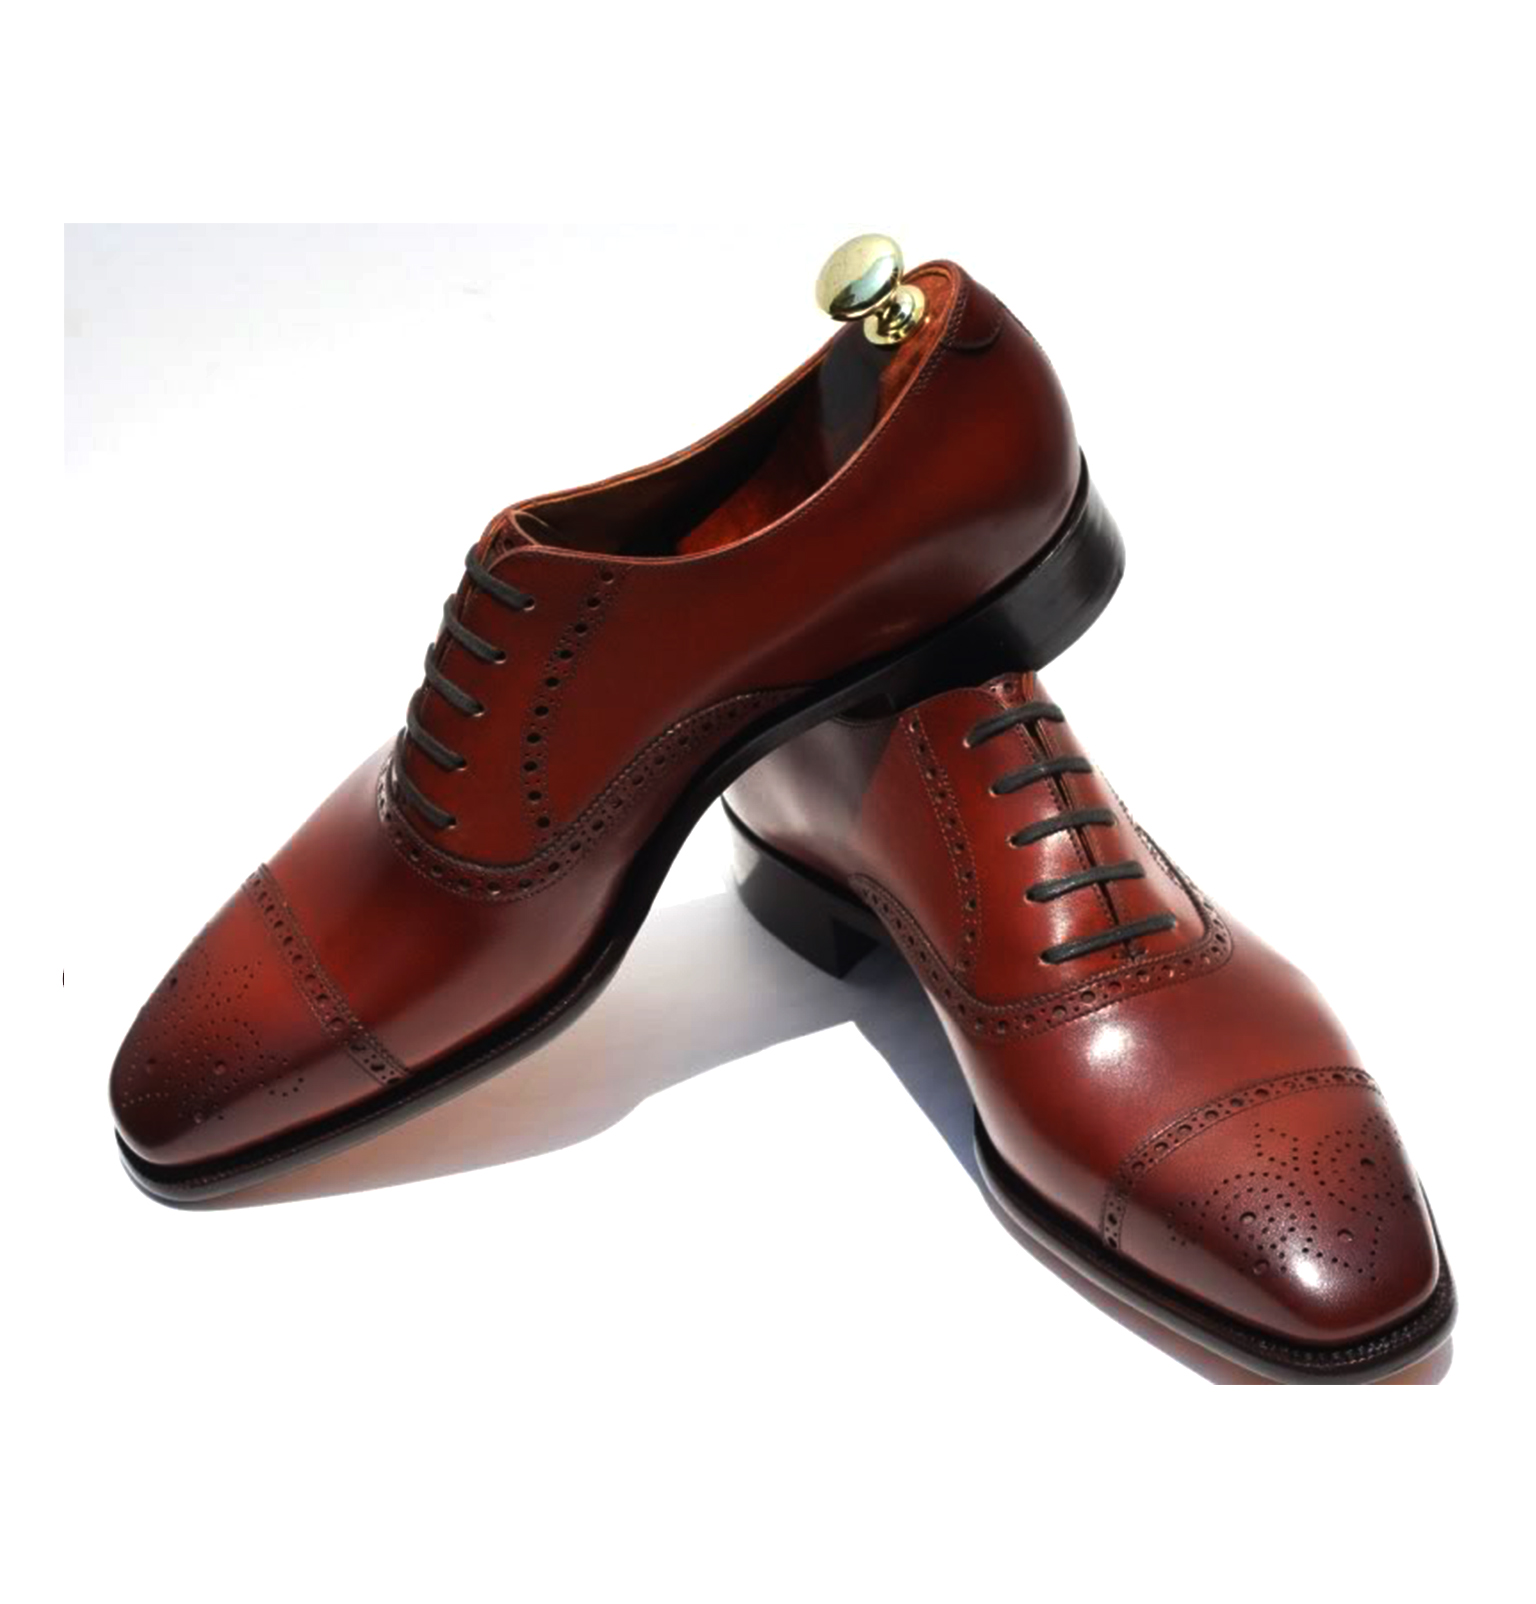 Wide Feet Shoes for Men | Broad Size